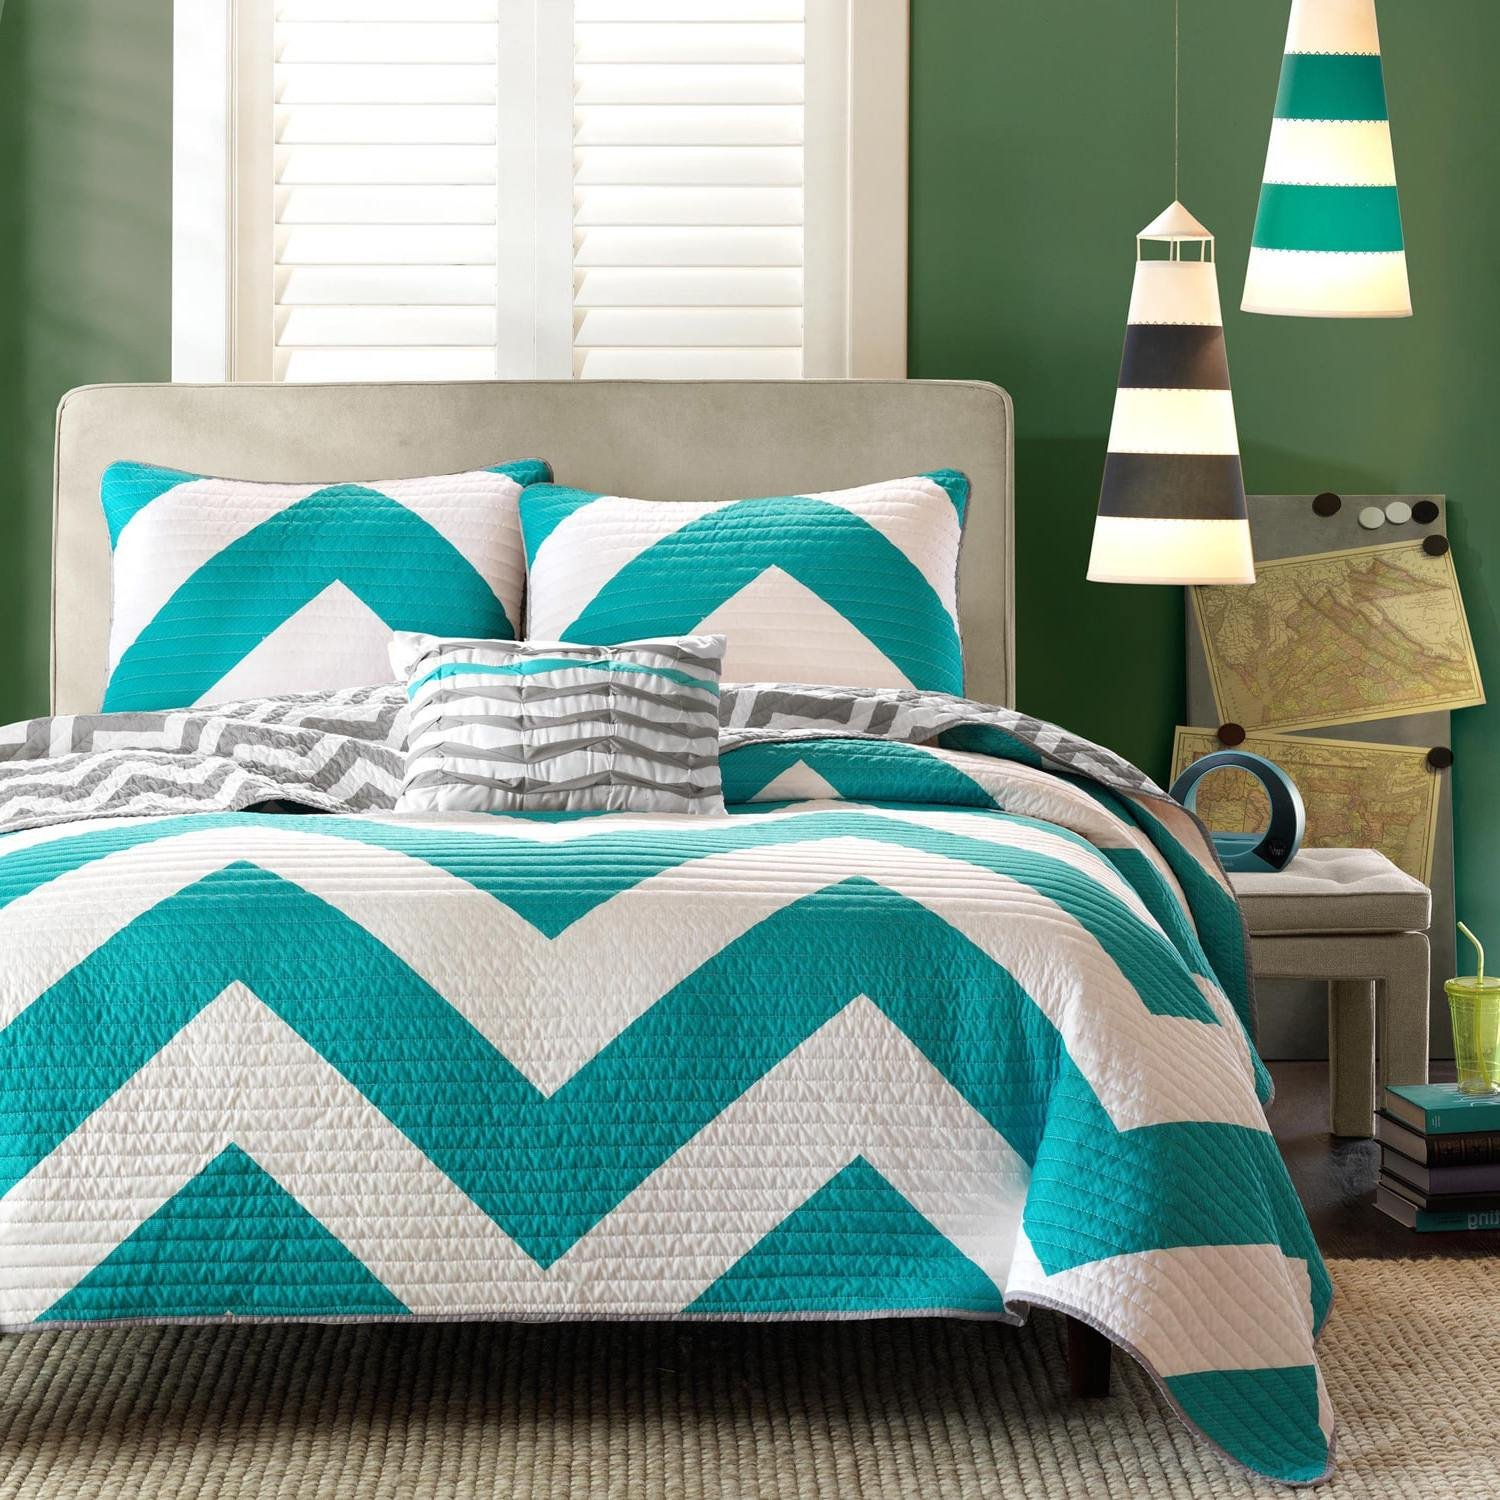 F&W 4 Piece Beautiful Blue Grey White Full Queen Quilt Set, Chevron Themed Reversible Bedding Zig Zag Chic Geometric Turquoise Teal Trendy Modern Aqua Bright Vibrant Colorful Stylish Bold, Microfiber